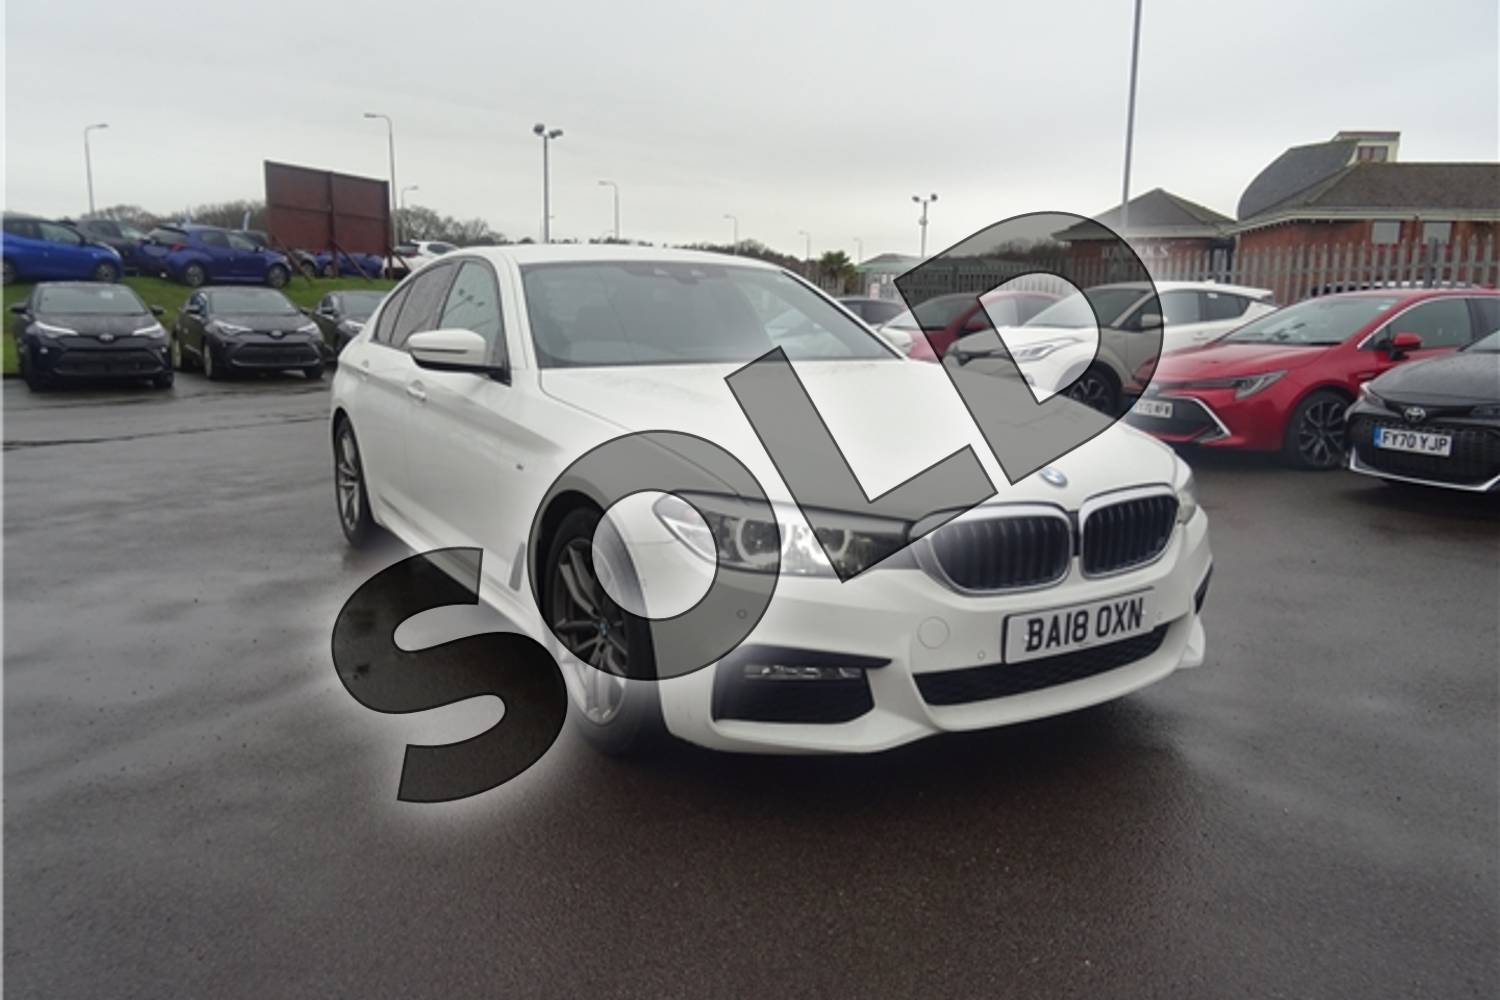 2018 BMW 5 Series Diesel Saloon 520d M Sport 4dr Auto in Solid - Alpine white at Listers Toyota Lincoln